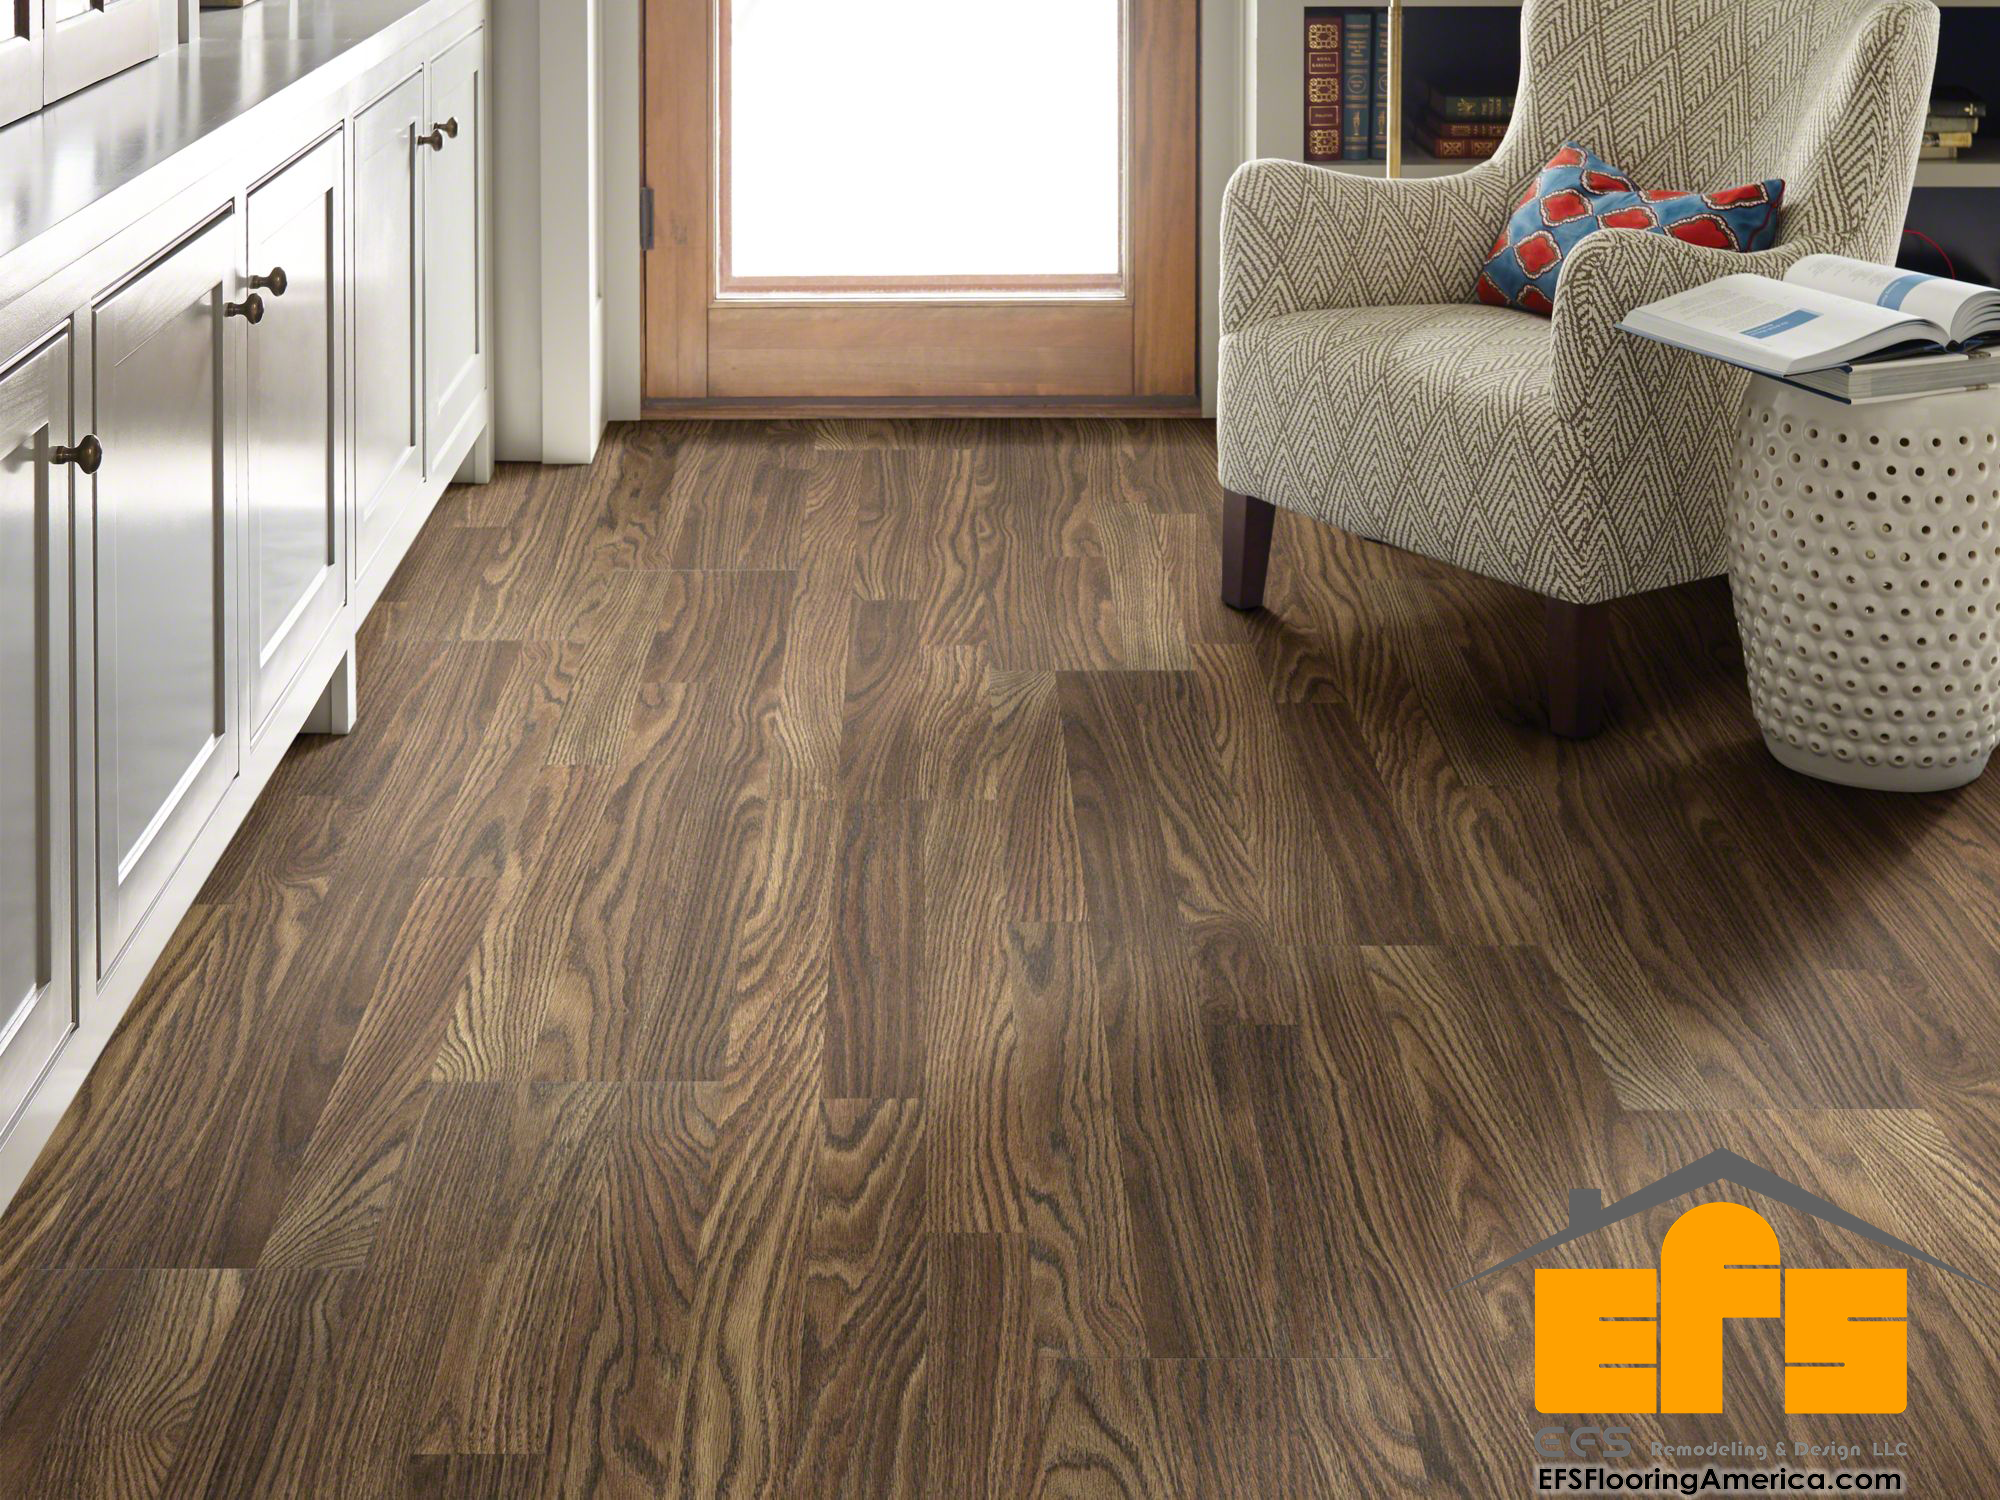 What is the difference between laminate and PVC flooring?